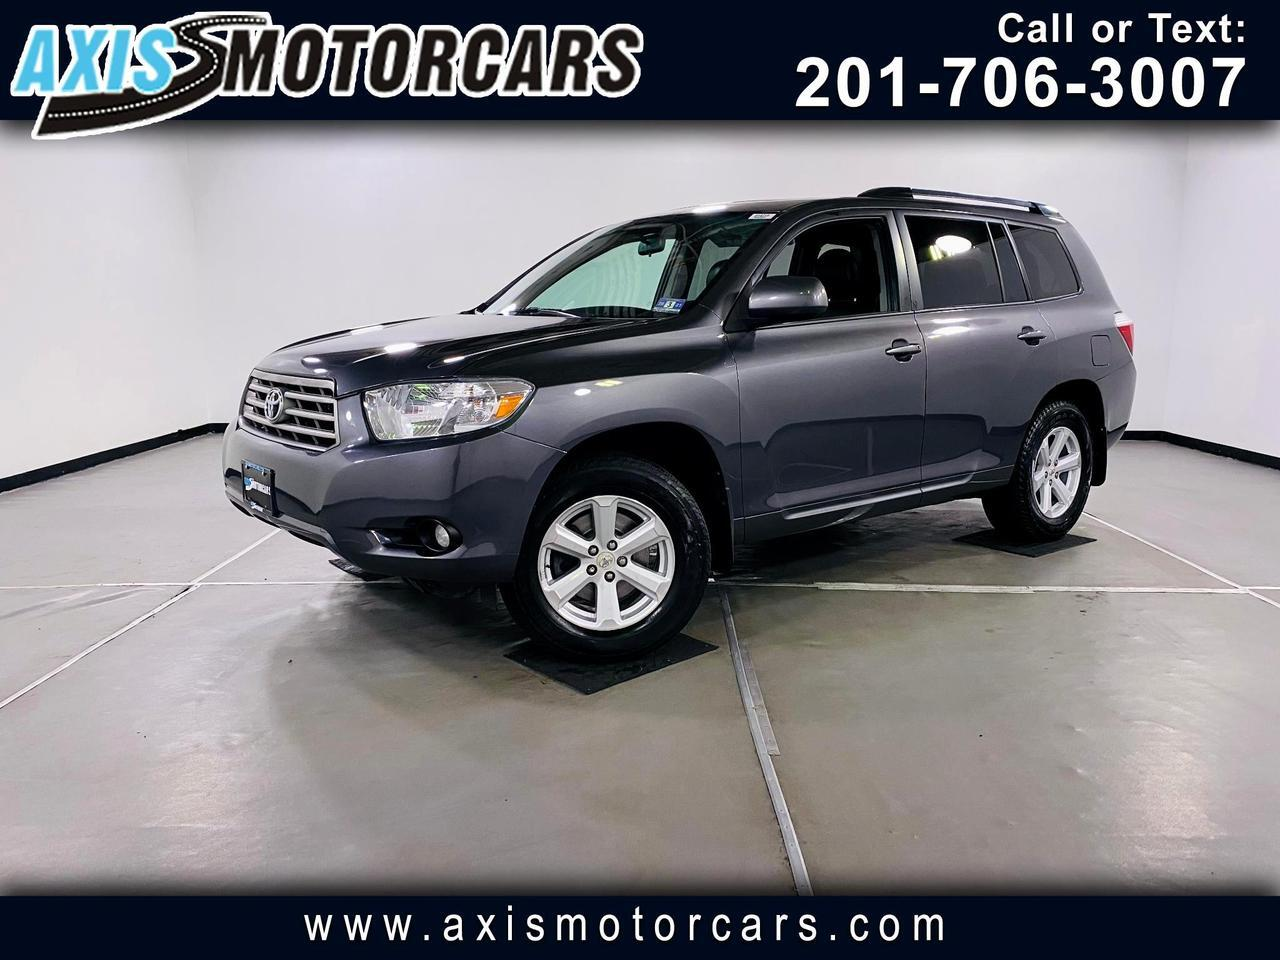 2010 Toyota Highlander SE w/Backup Camera 3rd Row Seat Jersey City NJ